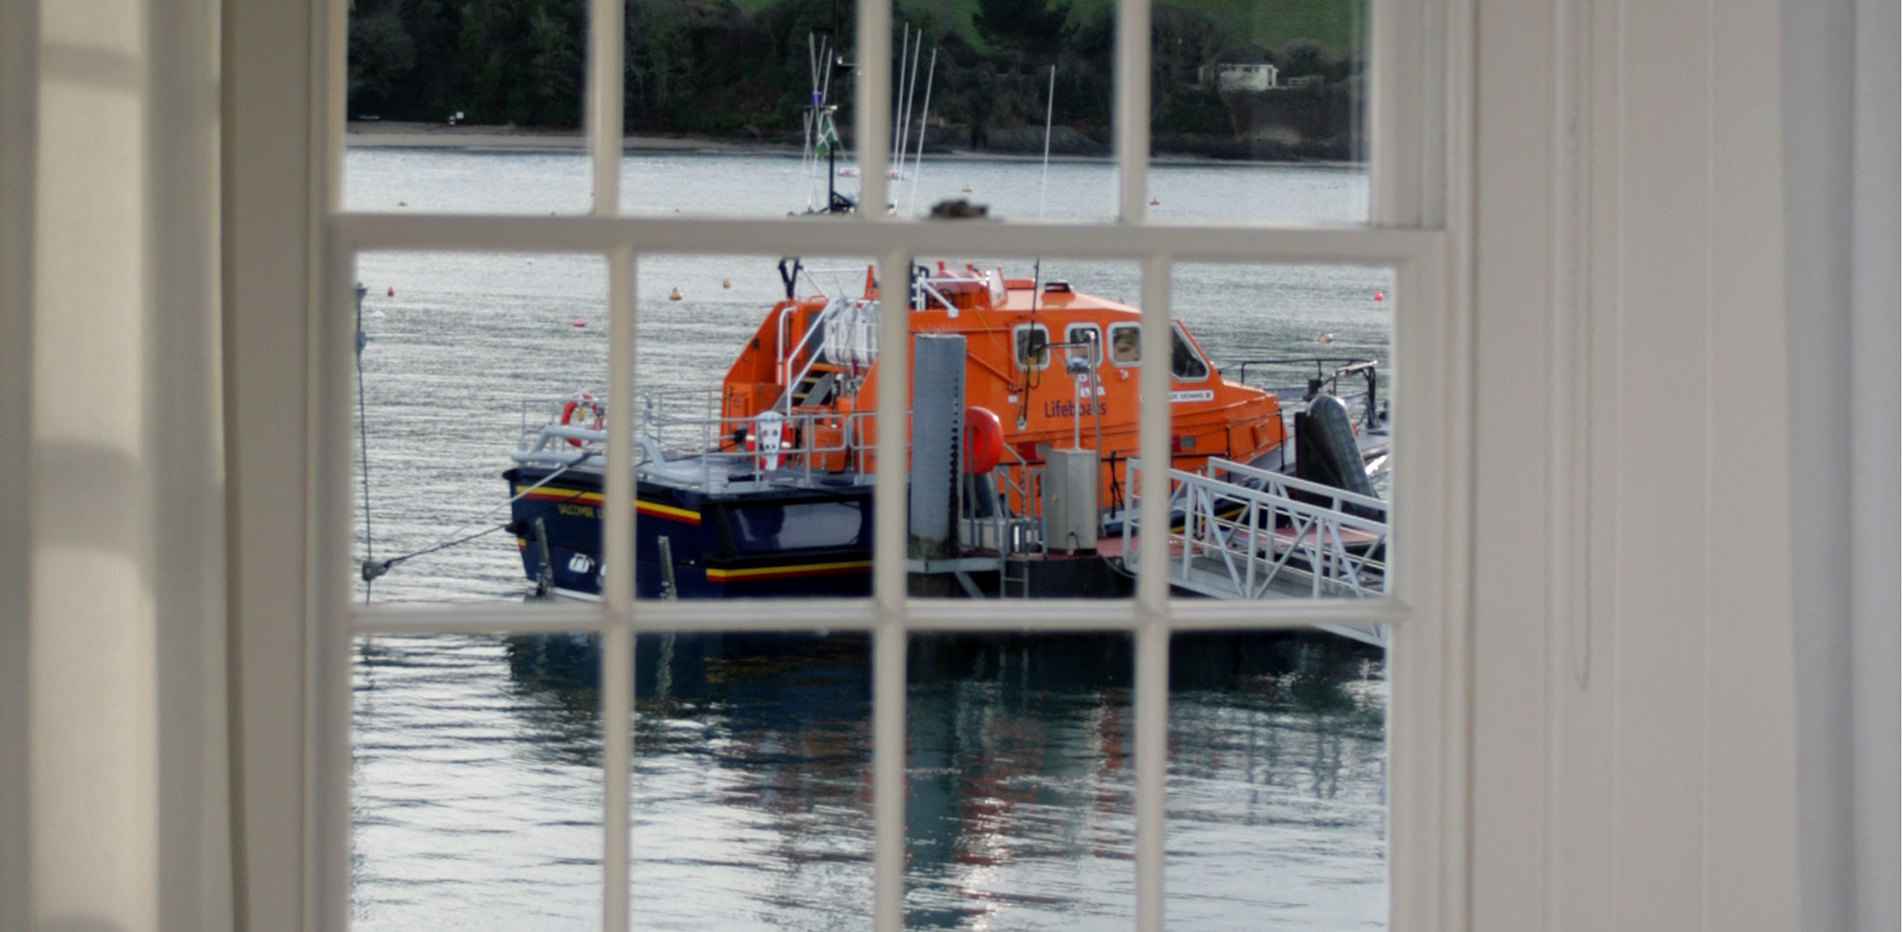 The Life Boat through the bedroom window